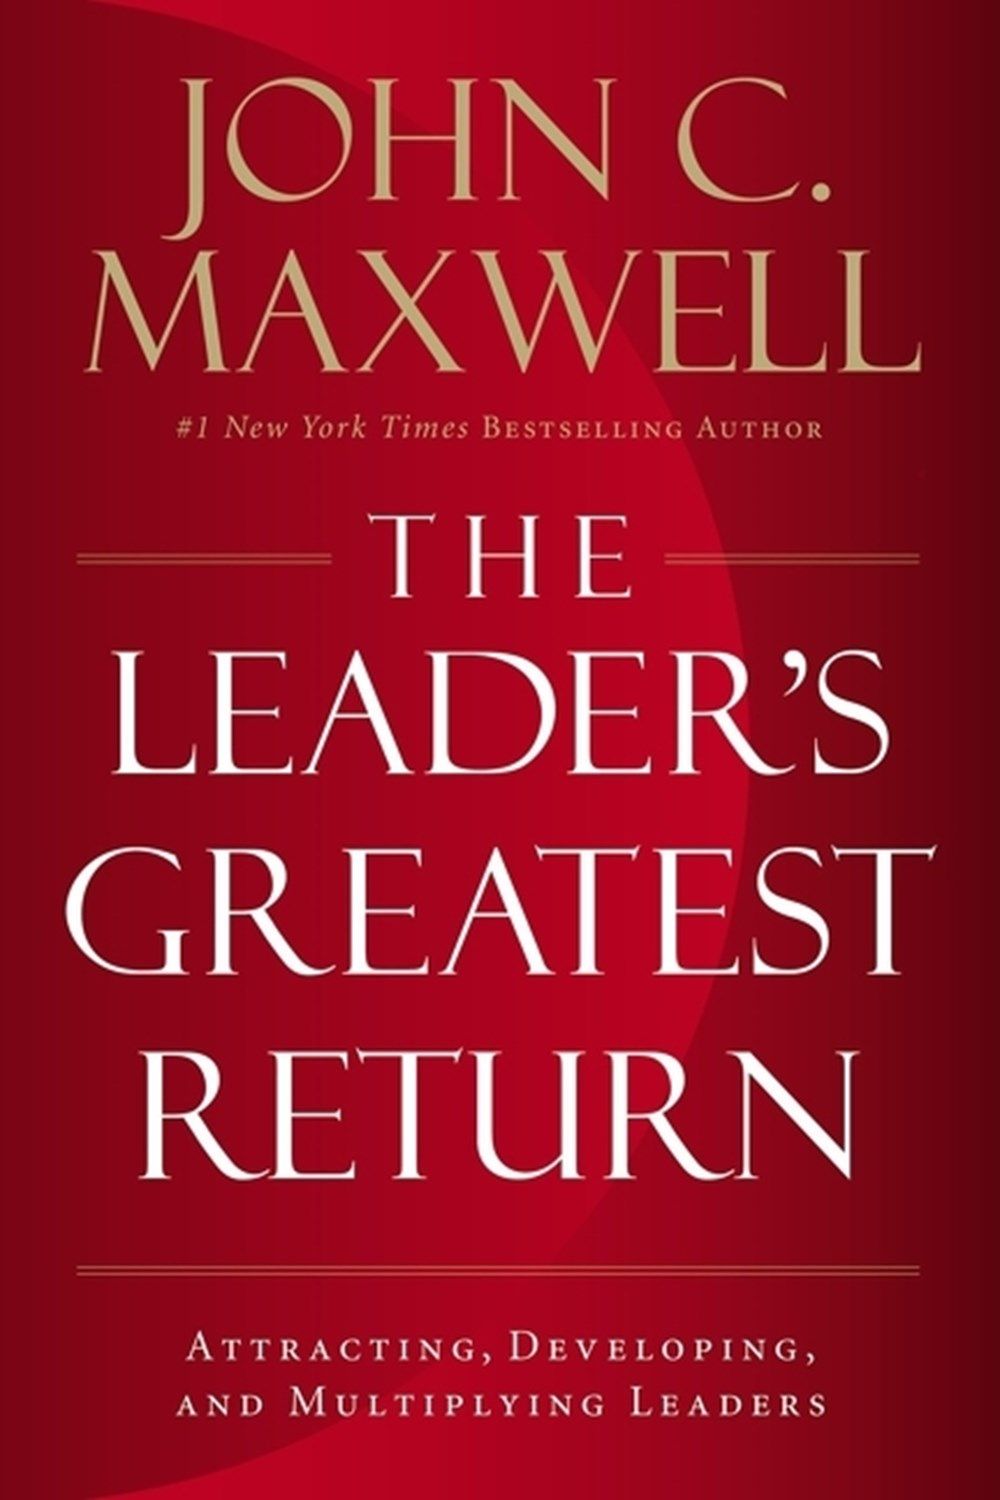 Leader's Greatest Return: Attracting, Developing, and Multiplying Leaders